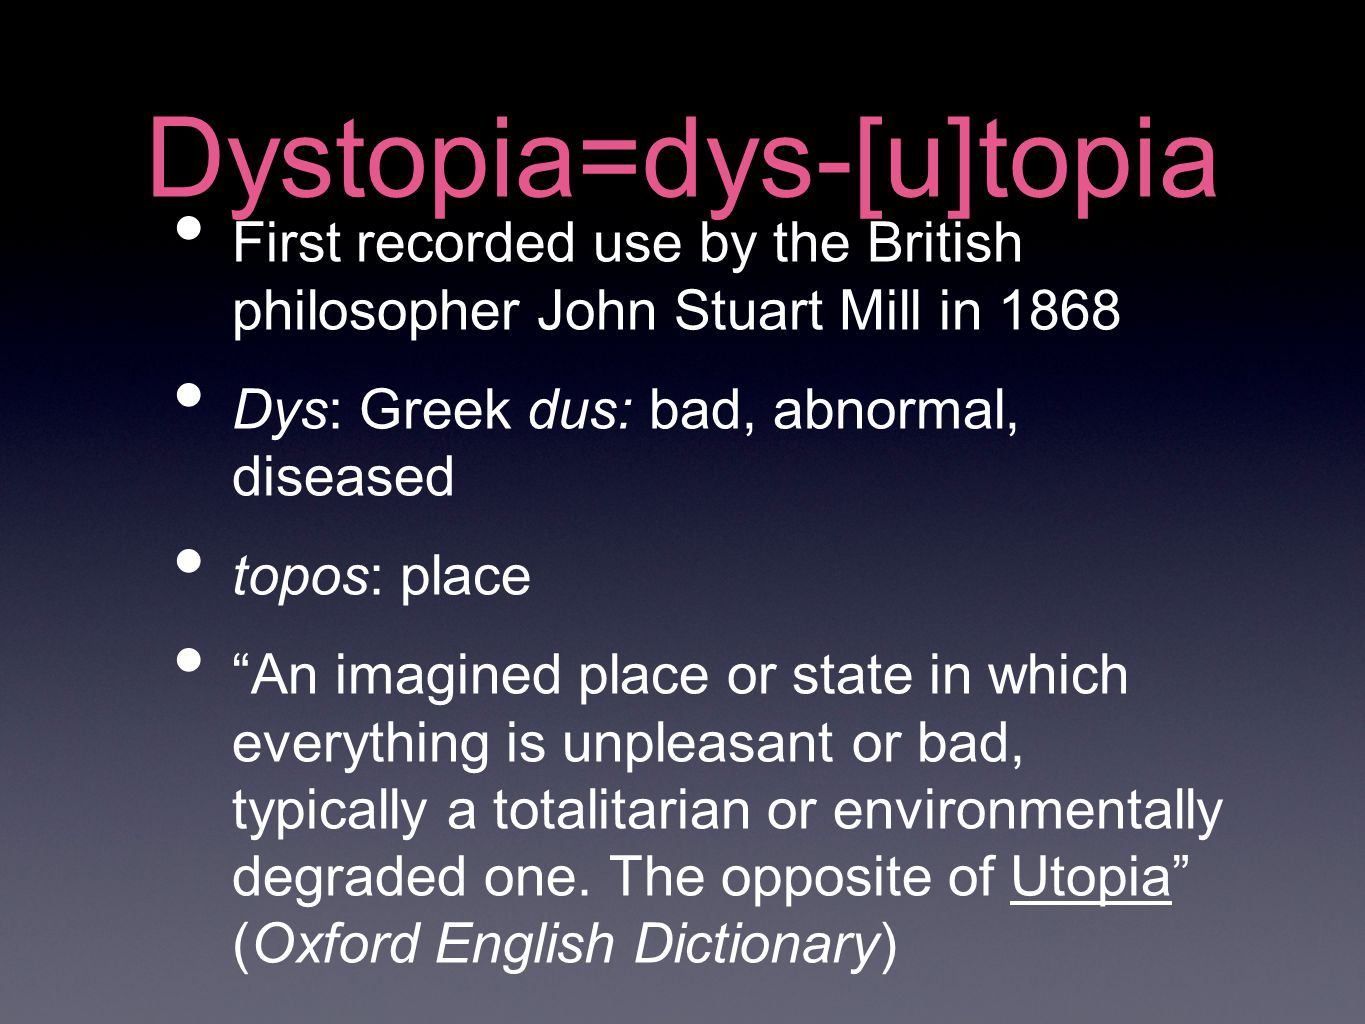 Dystopia=dys-[u]topia First recorded use by the British philosopher John Stuart Mill in 1868 Dys: Greek dus: bad, abnormal, diseased topos: place An imagined place or state in which everything is unpleasant or bad, typically a totalitarian or environmentally degraded one.